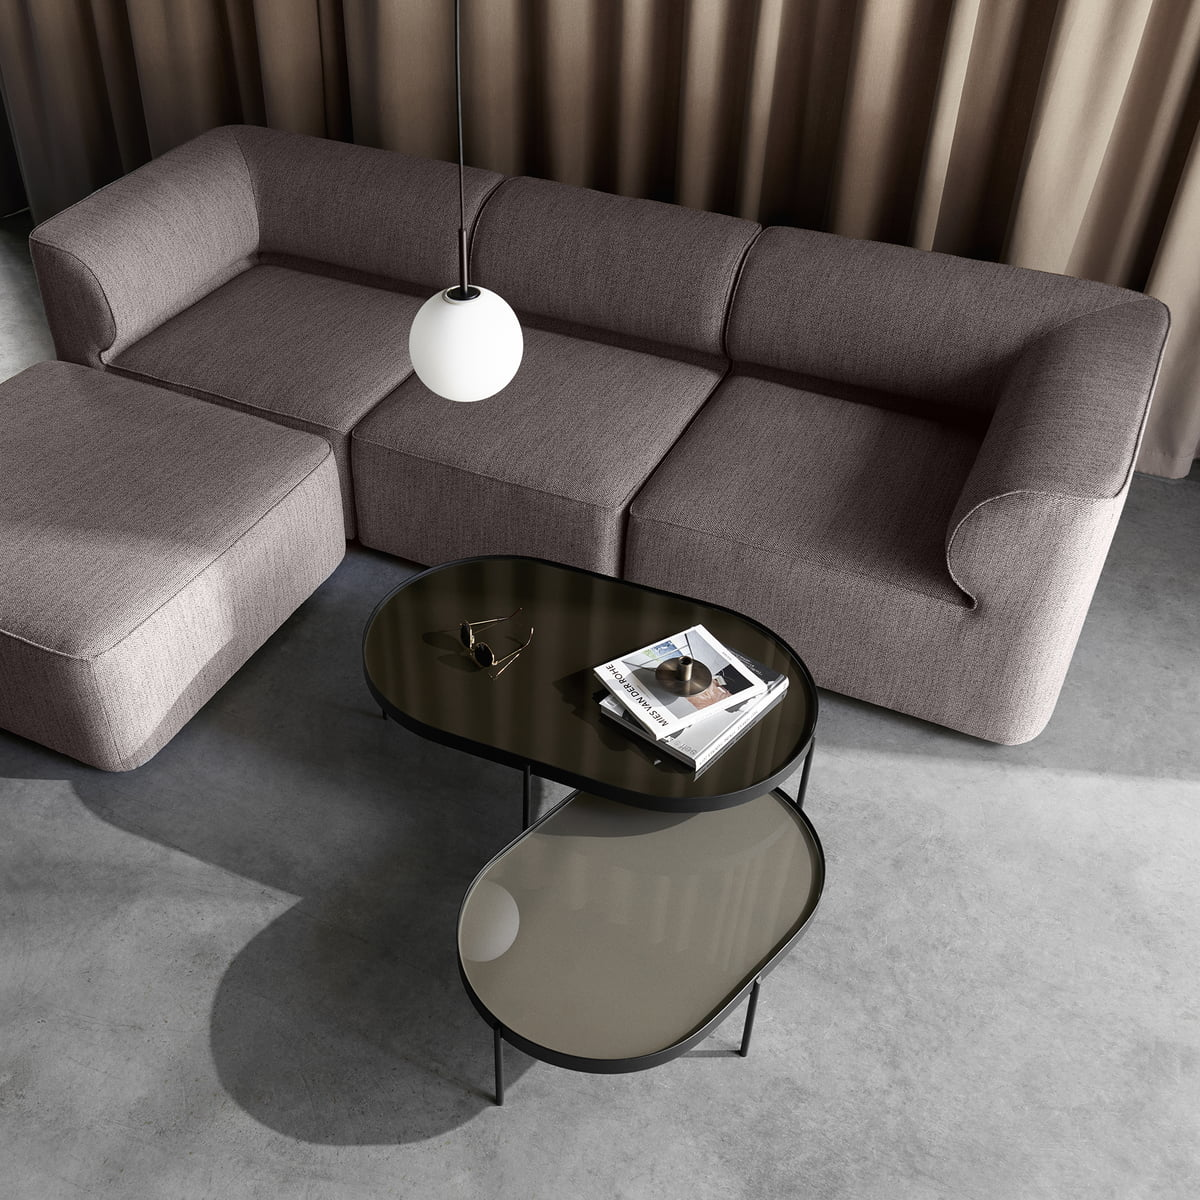 The Menu NoNo Coffee Table And The Eave Sofa Arranged As A Sitting Area